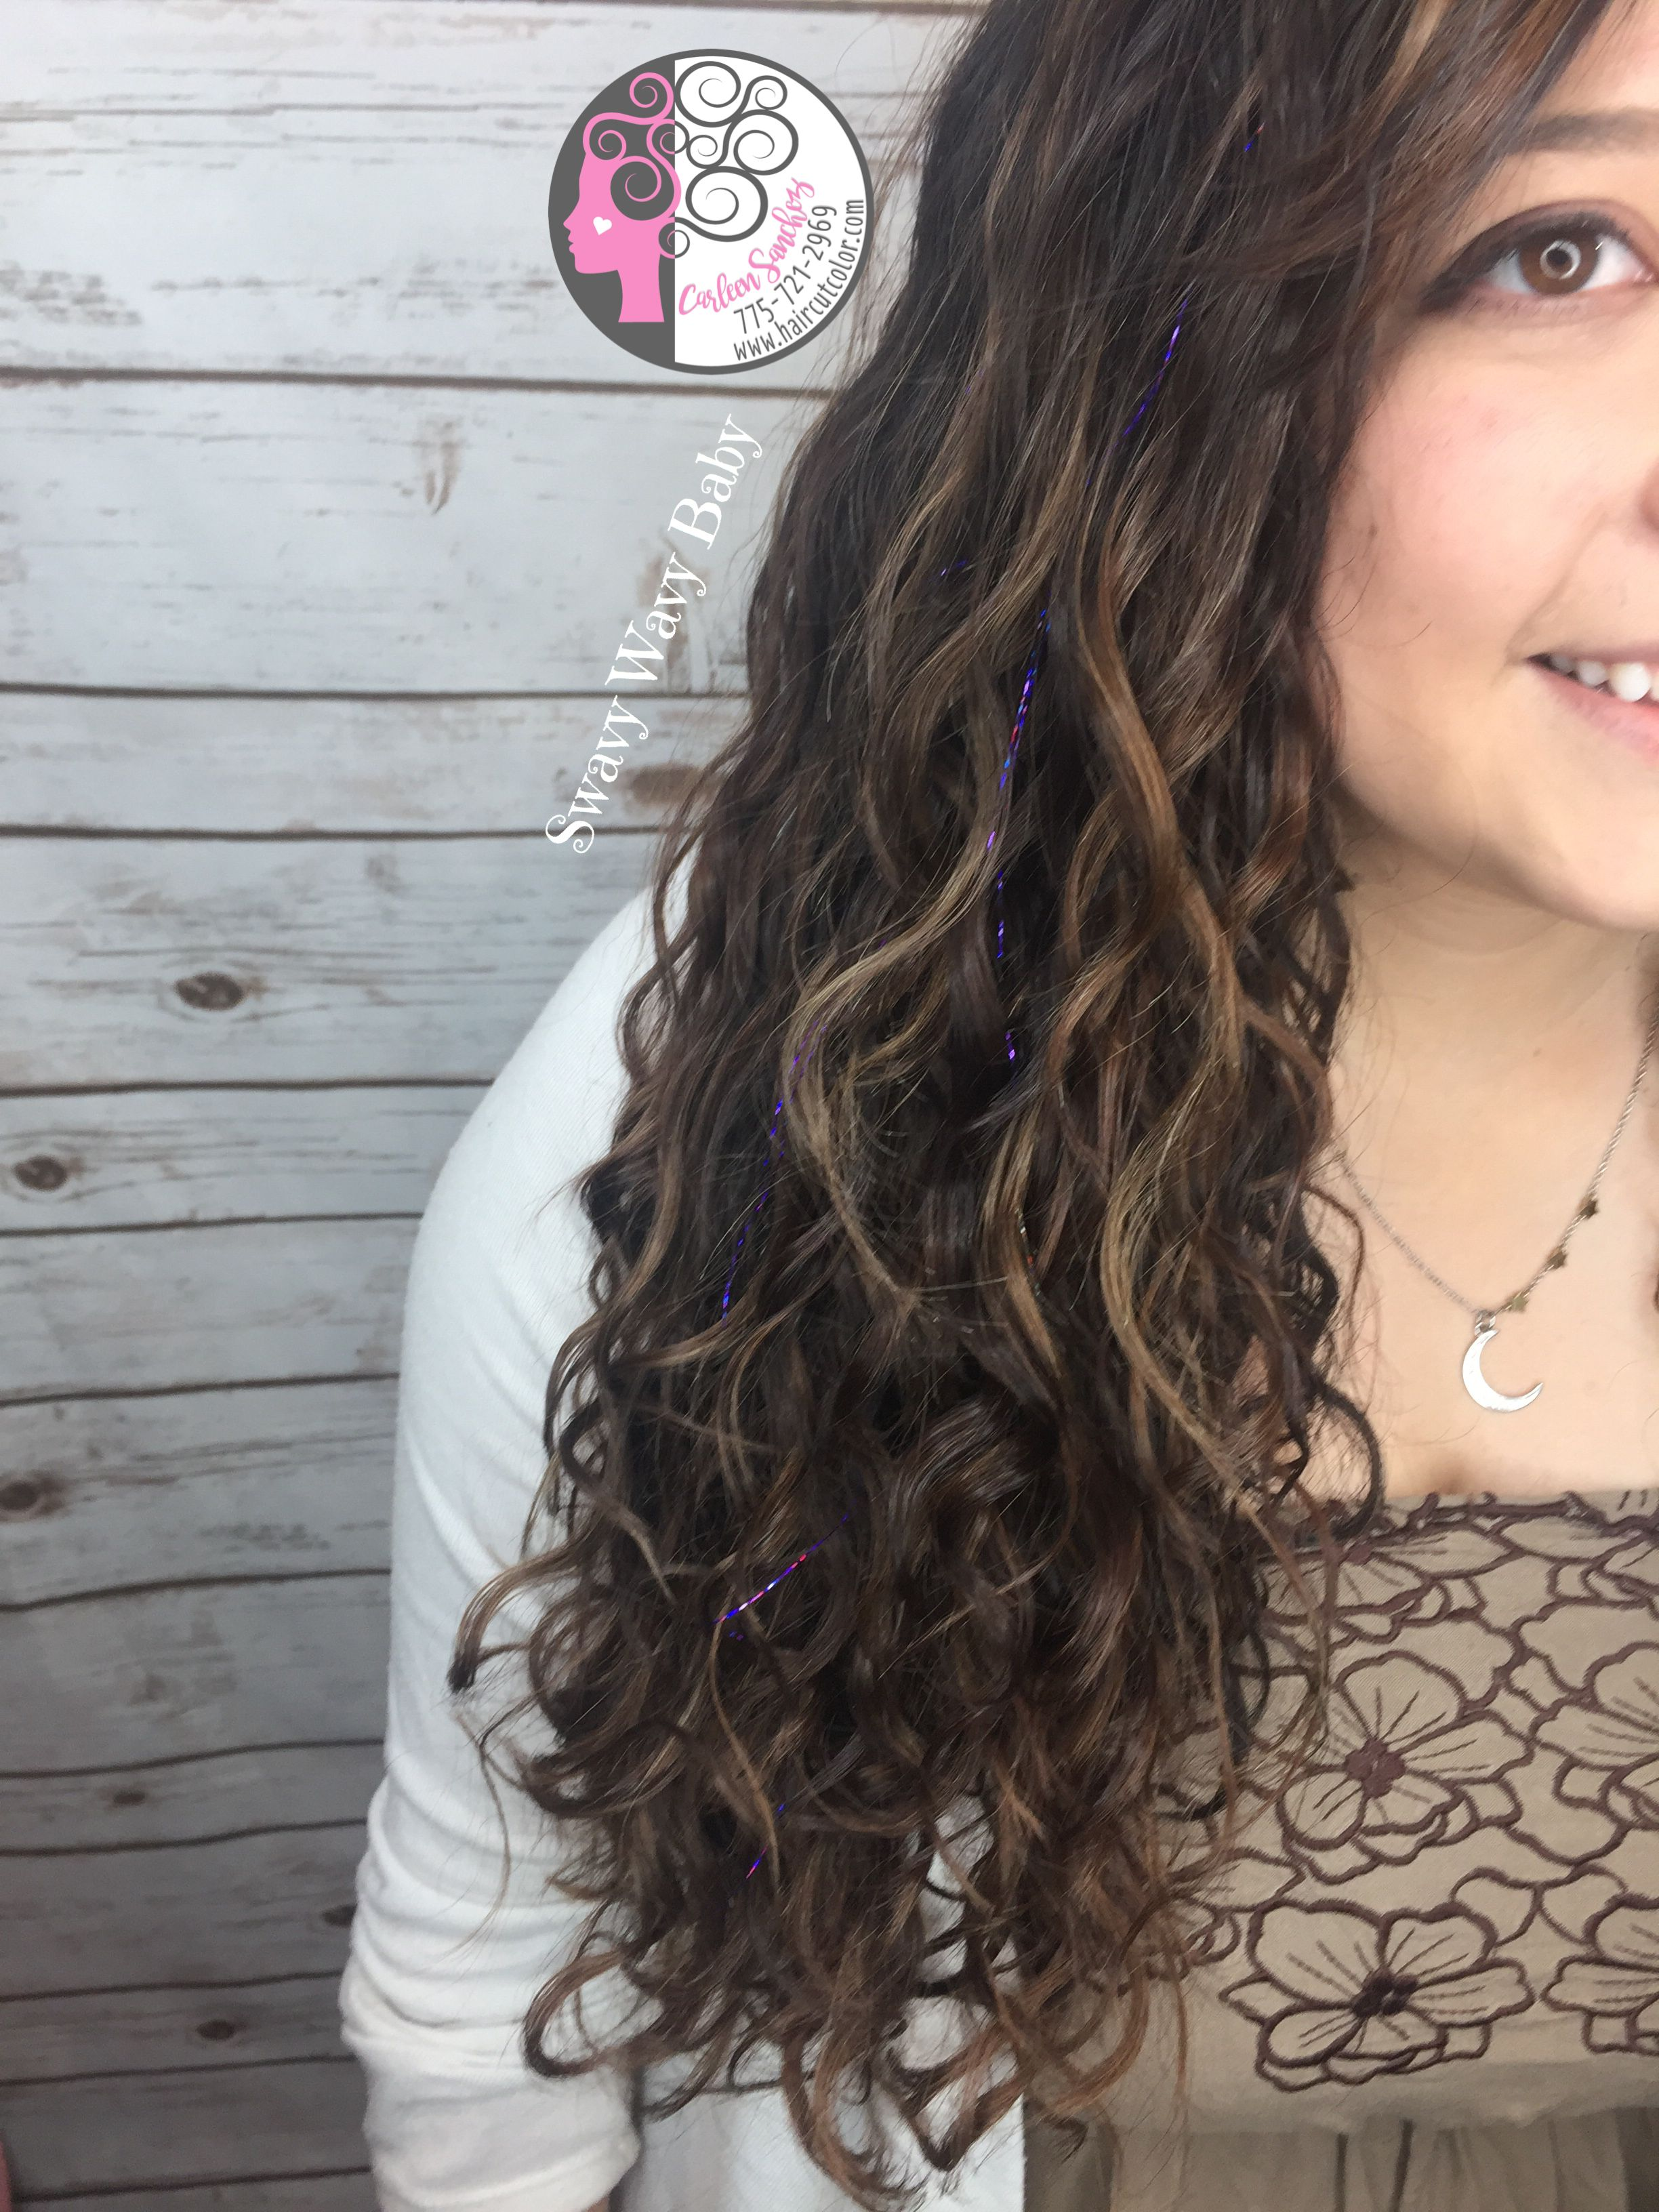 Naturally Curly Wavy Balayage Highlights Brunette Bronze Hair By Carleen Sanchez Nevada S Curl Curly Hair Styles Bronze Hair Color Balayage Highlights Brunette